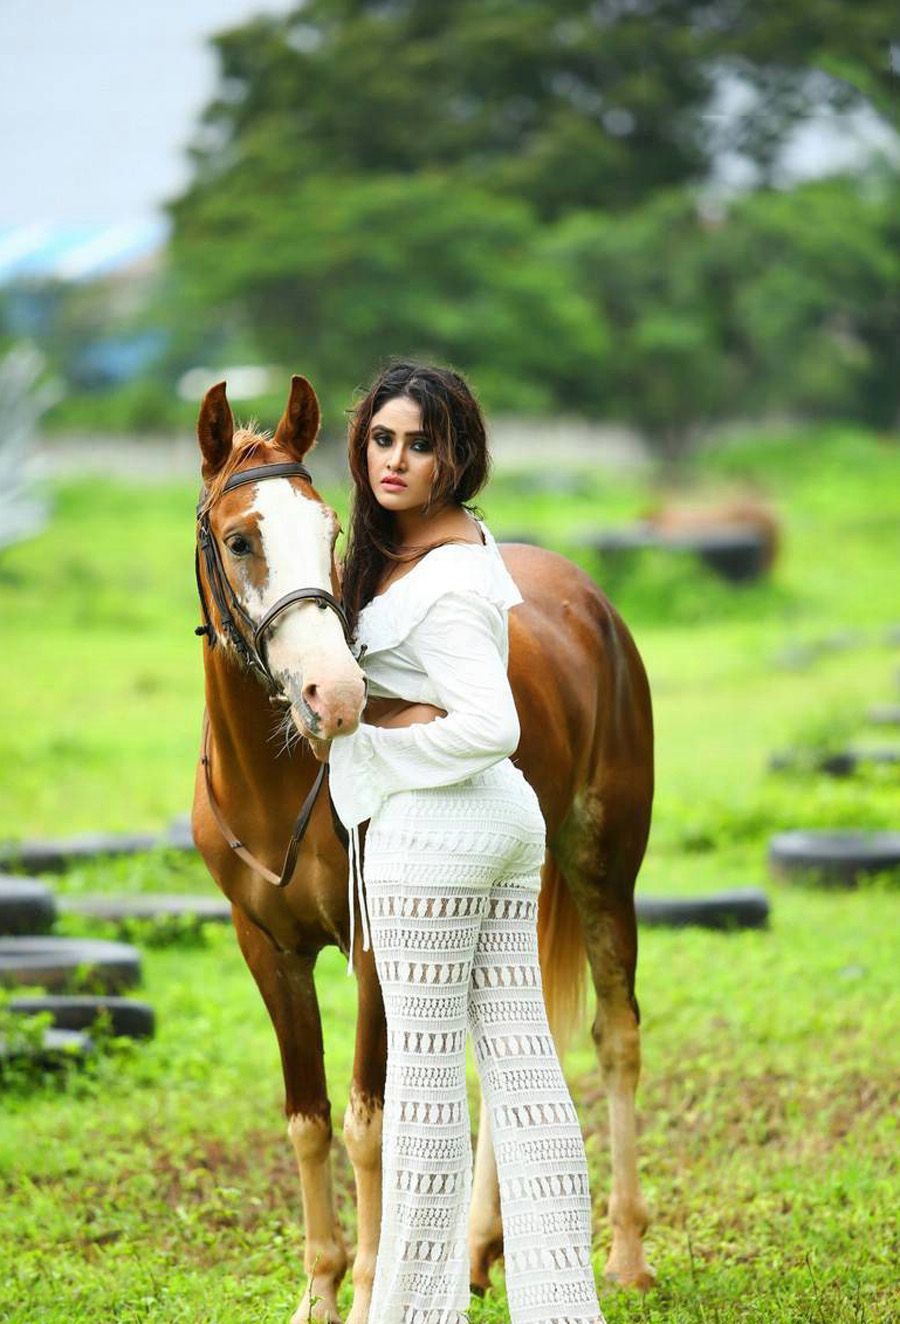 Sony Charishta Posing by the Horse